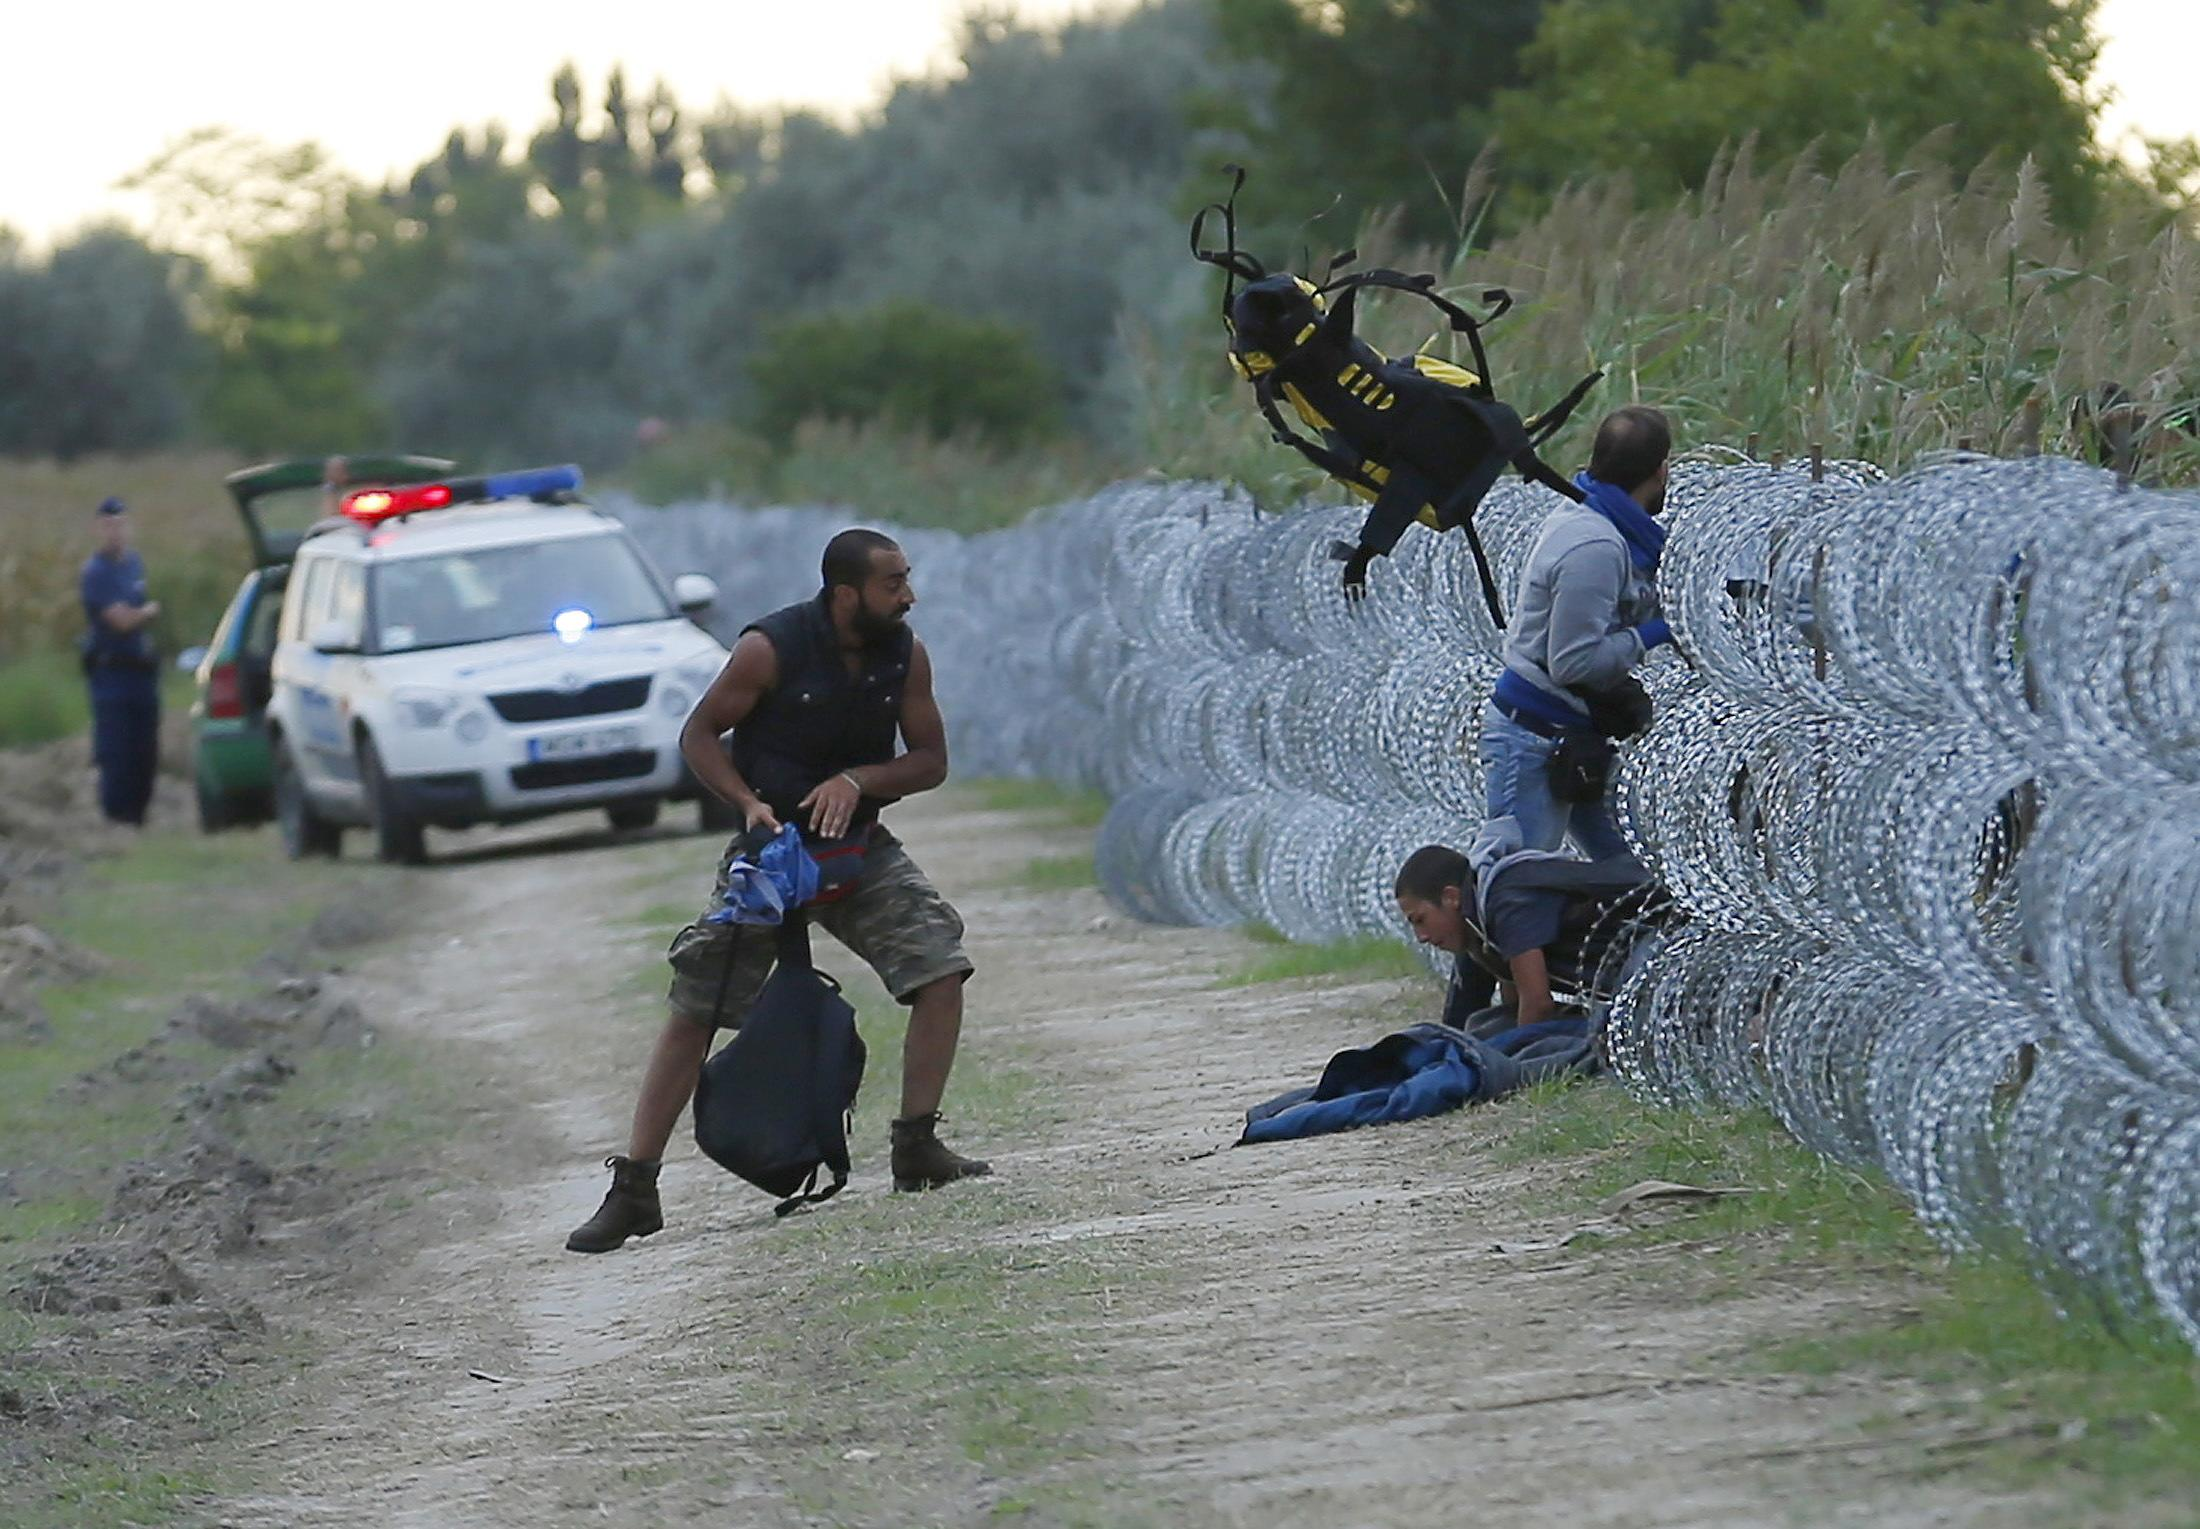 This photo sums up the slow-motion tragedy unfolding in Europe